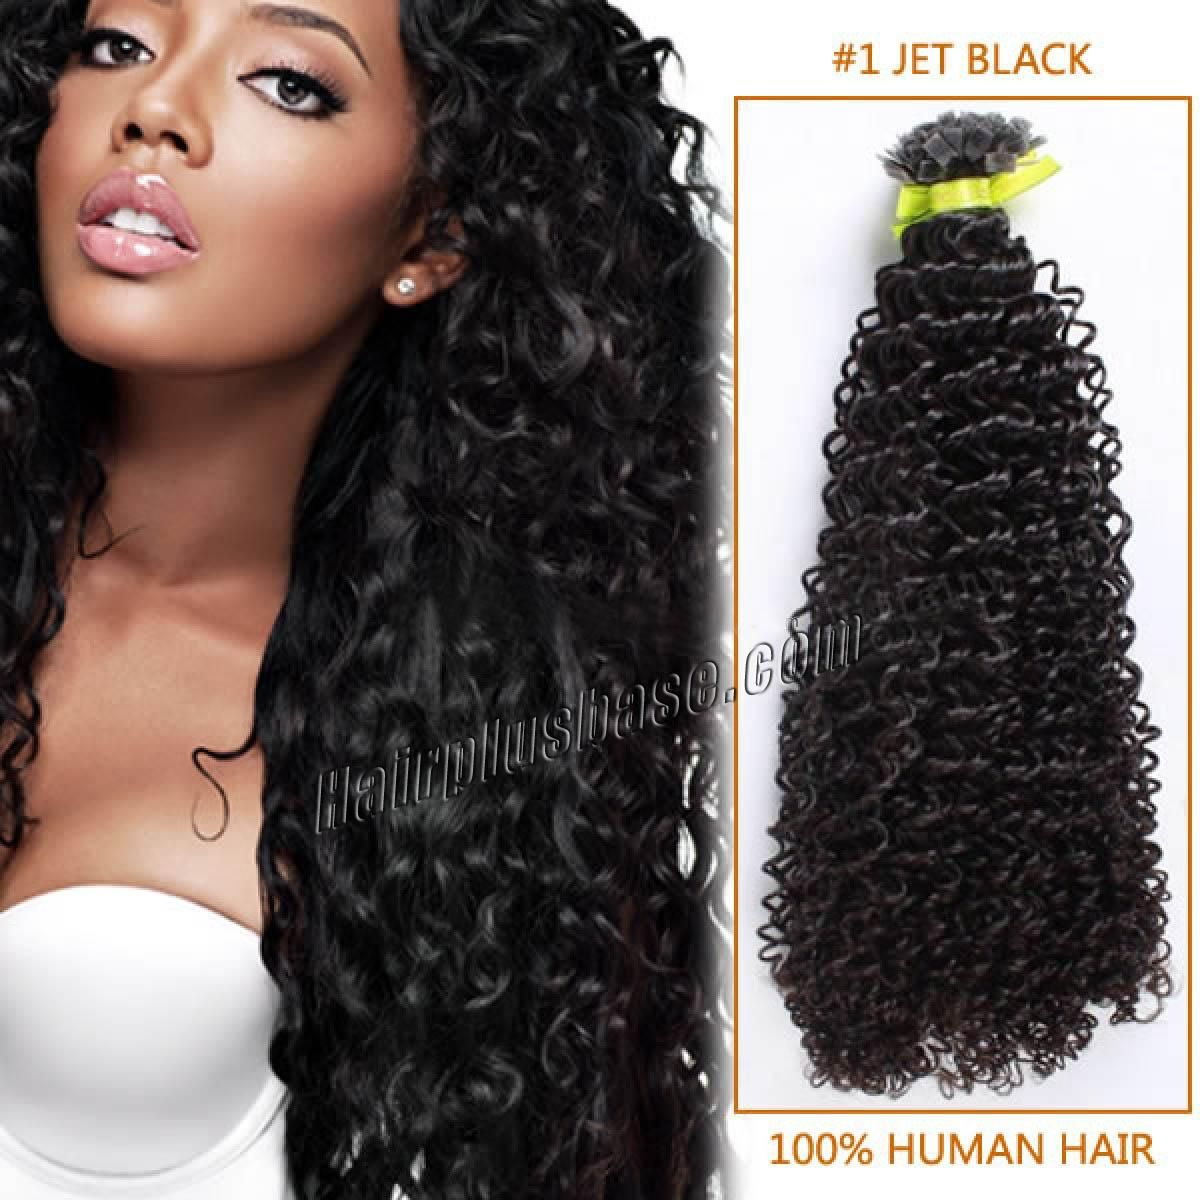 16 Inch 1 Jet Black Afro Curl Indian Remy Hair Wefts Curly